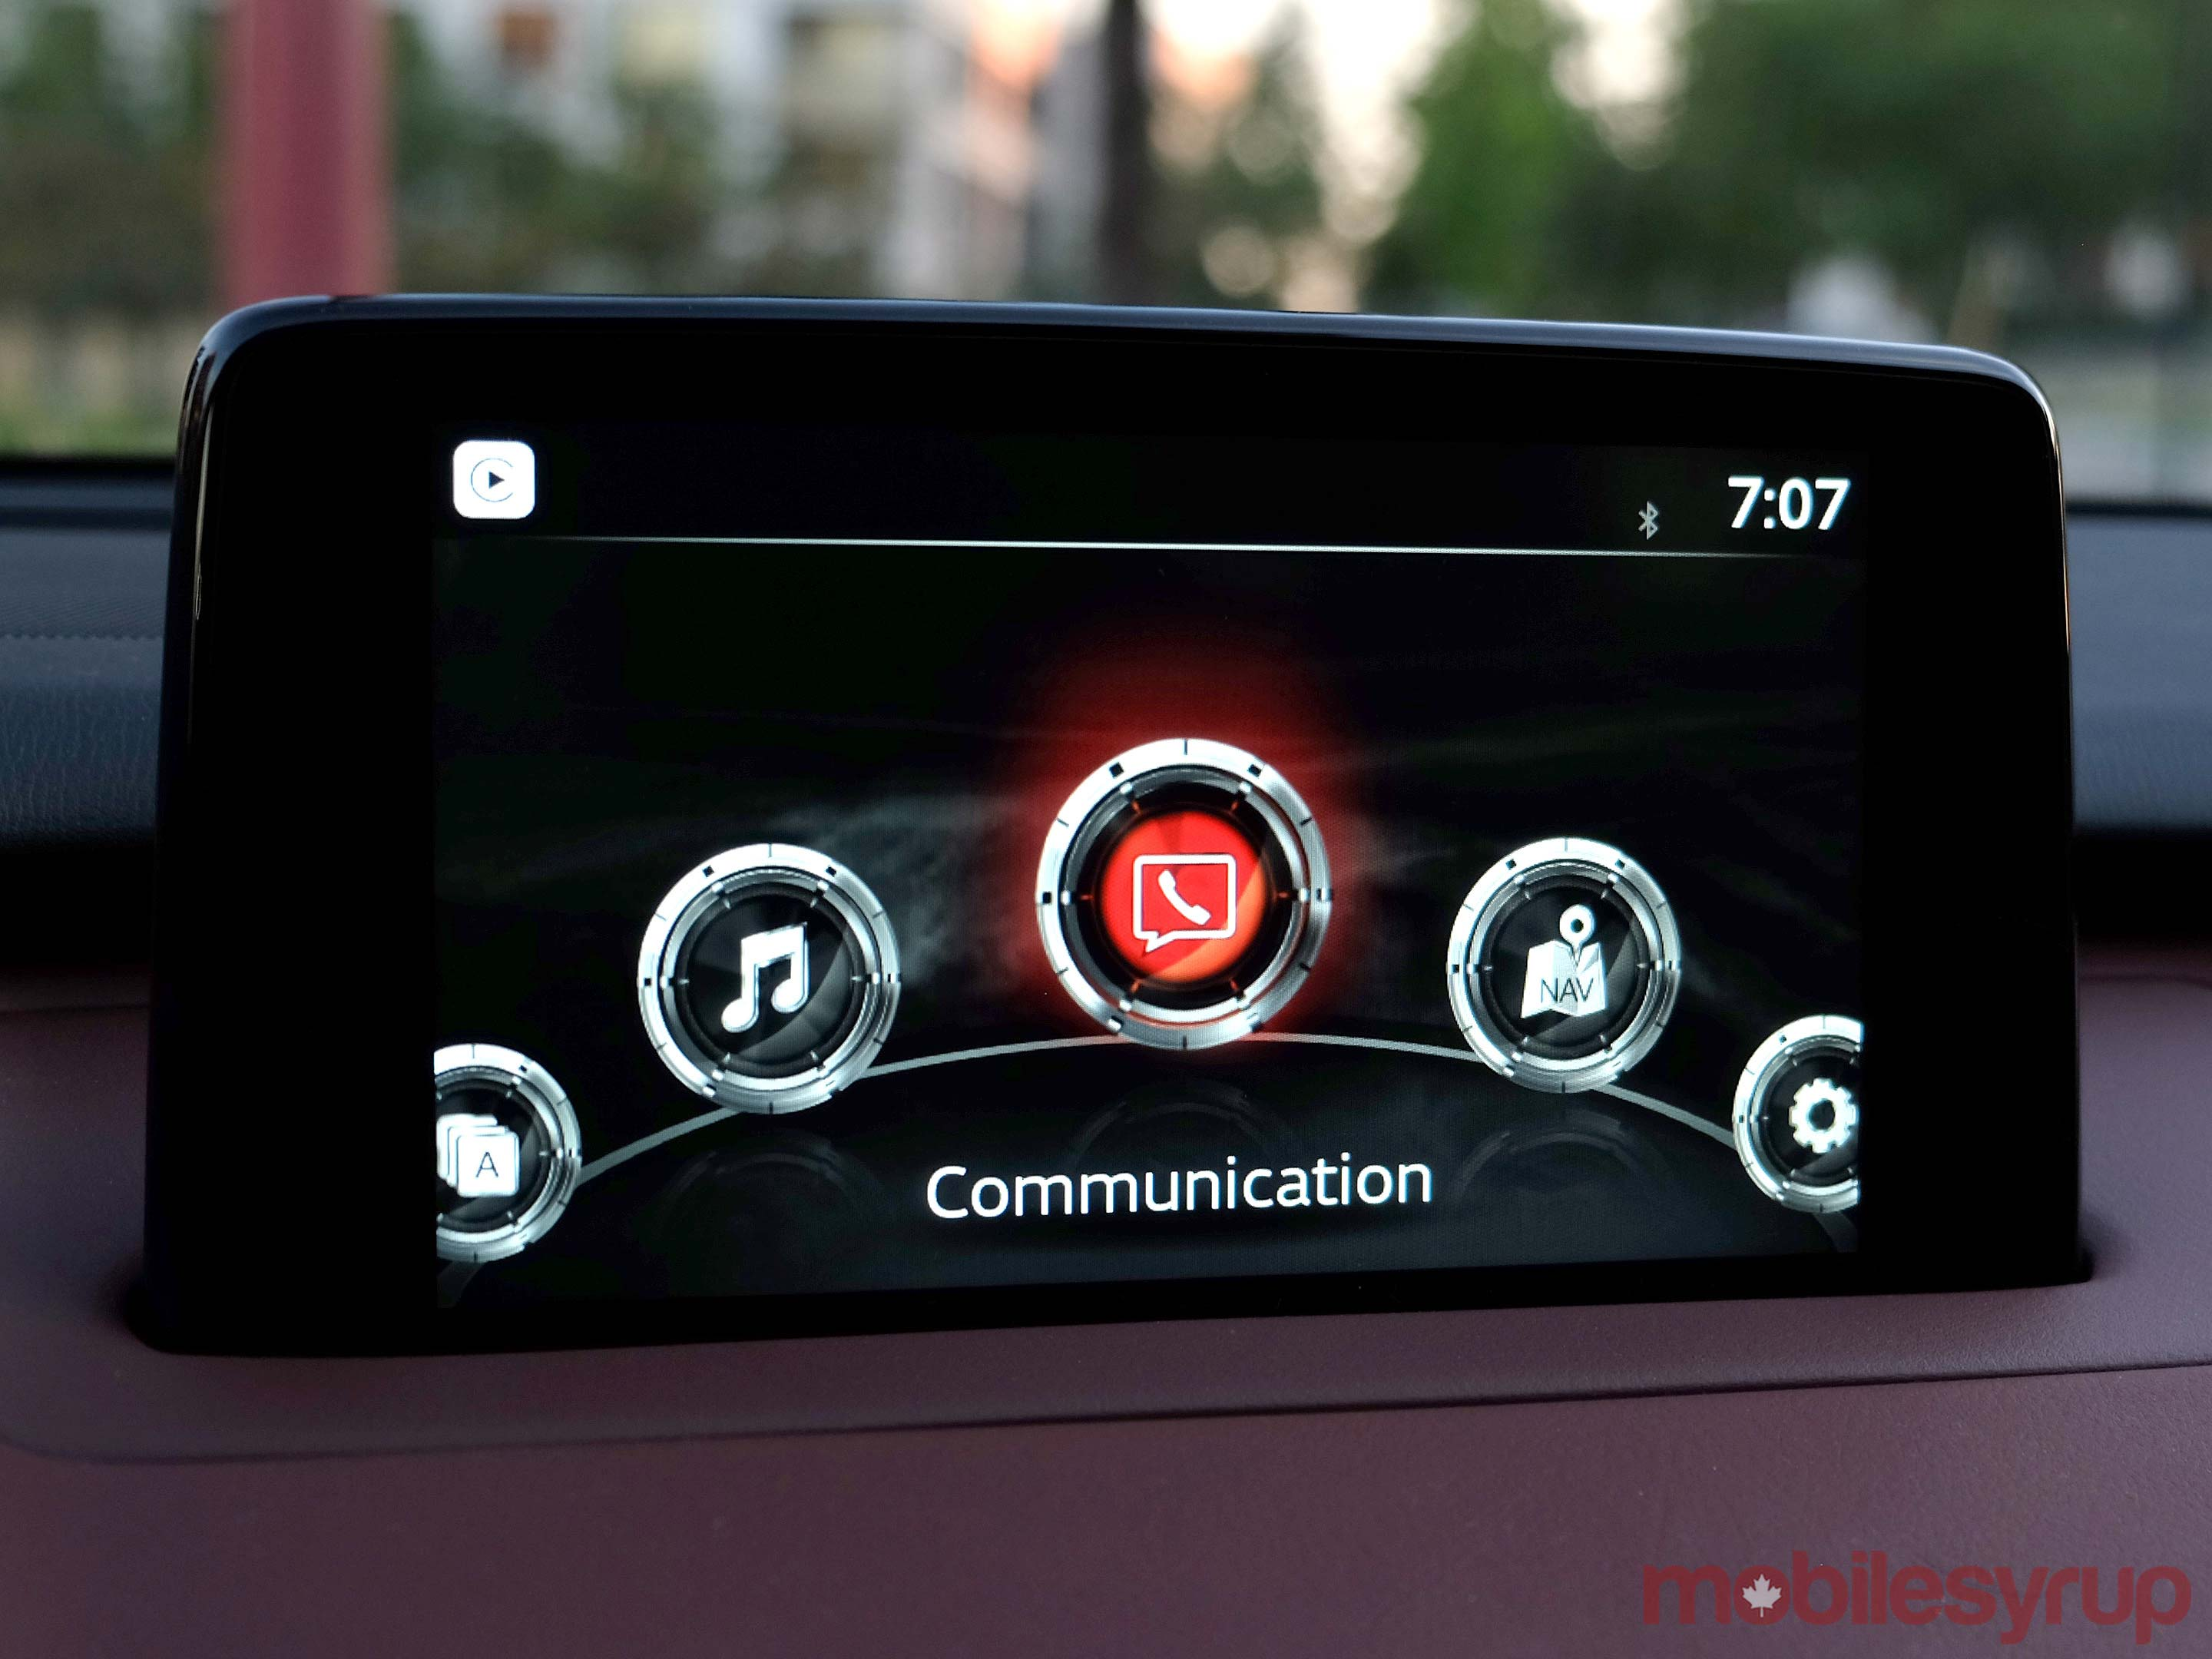 2019 Mazda Connect Infotainment Review: Keeping it simple